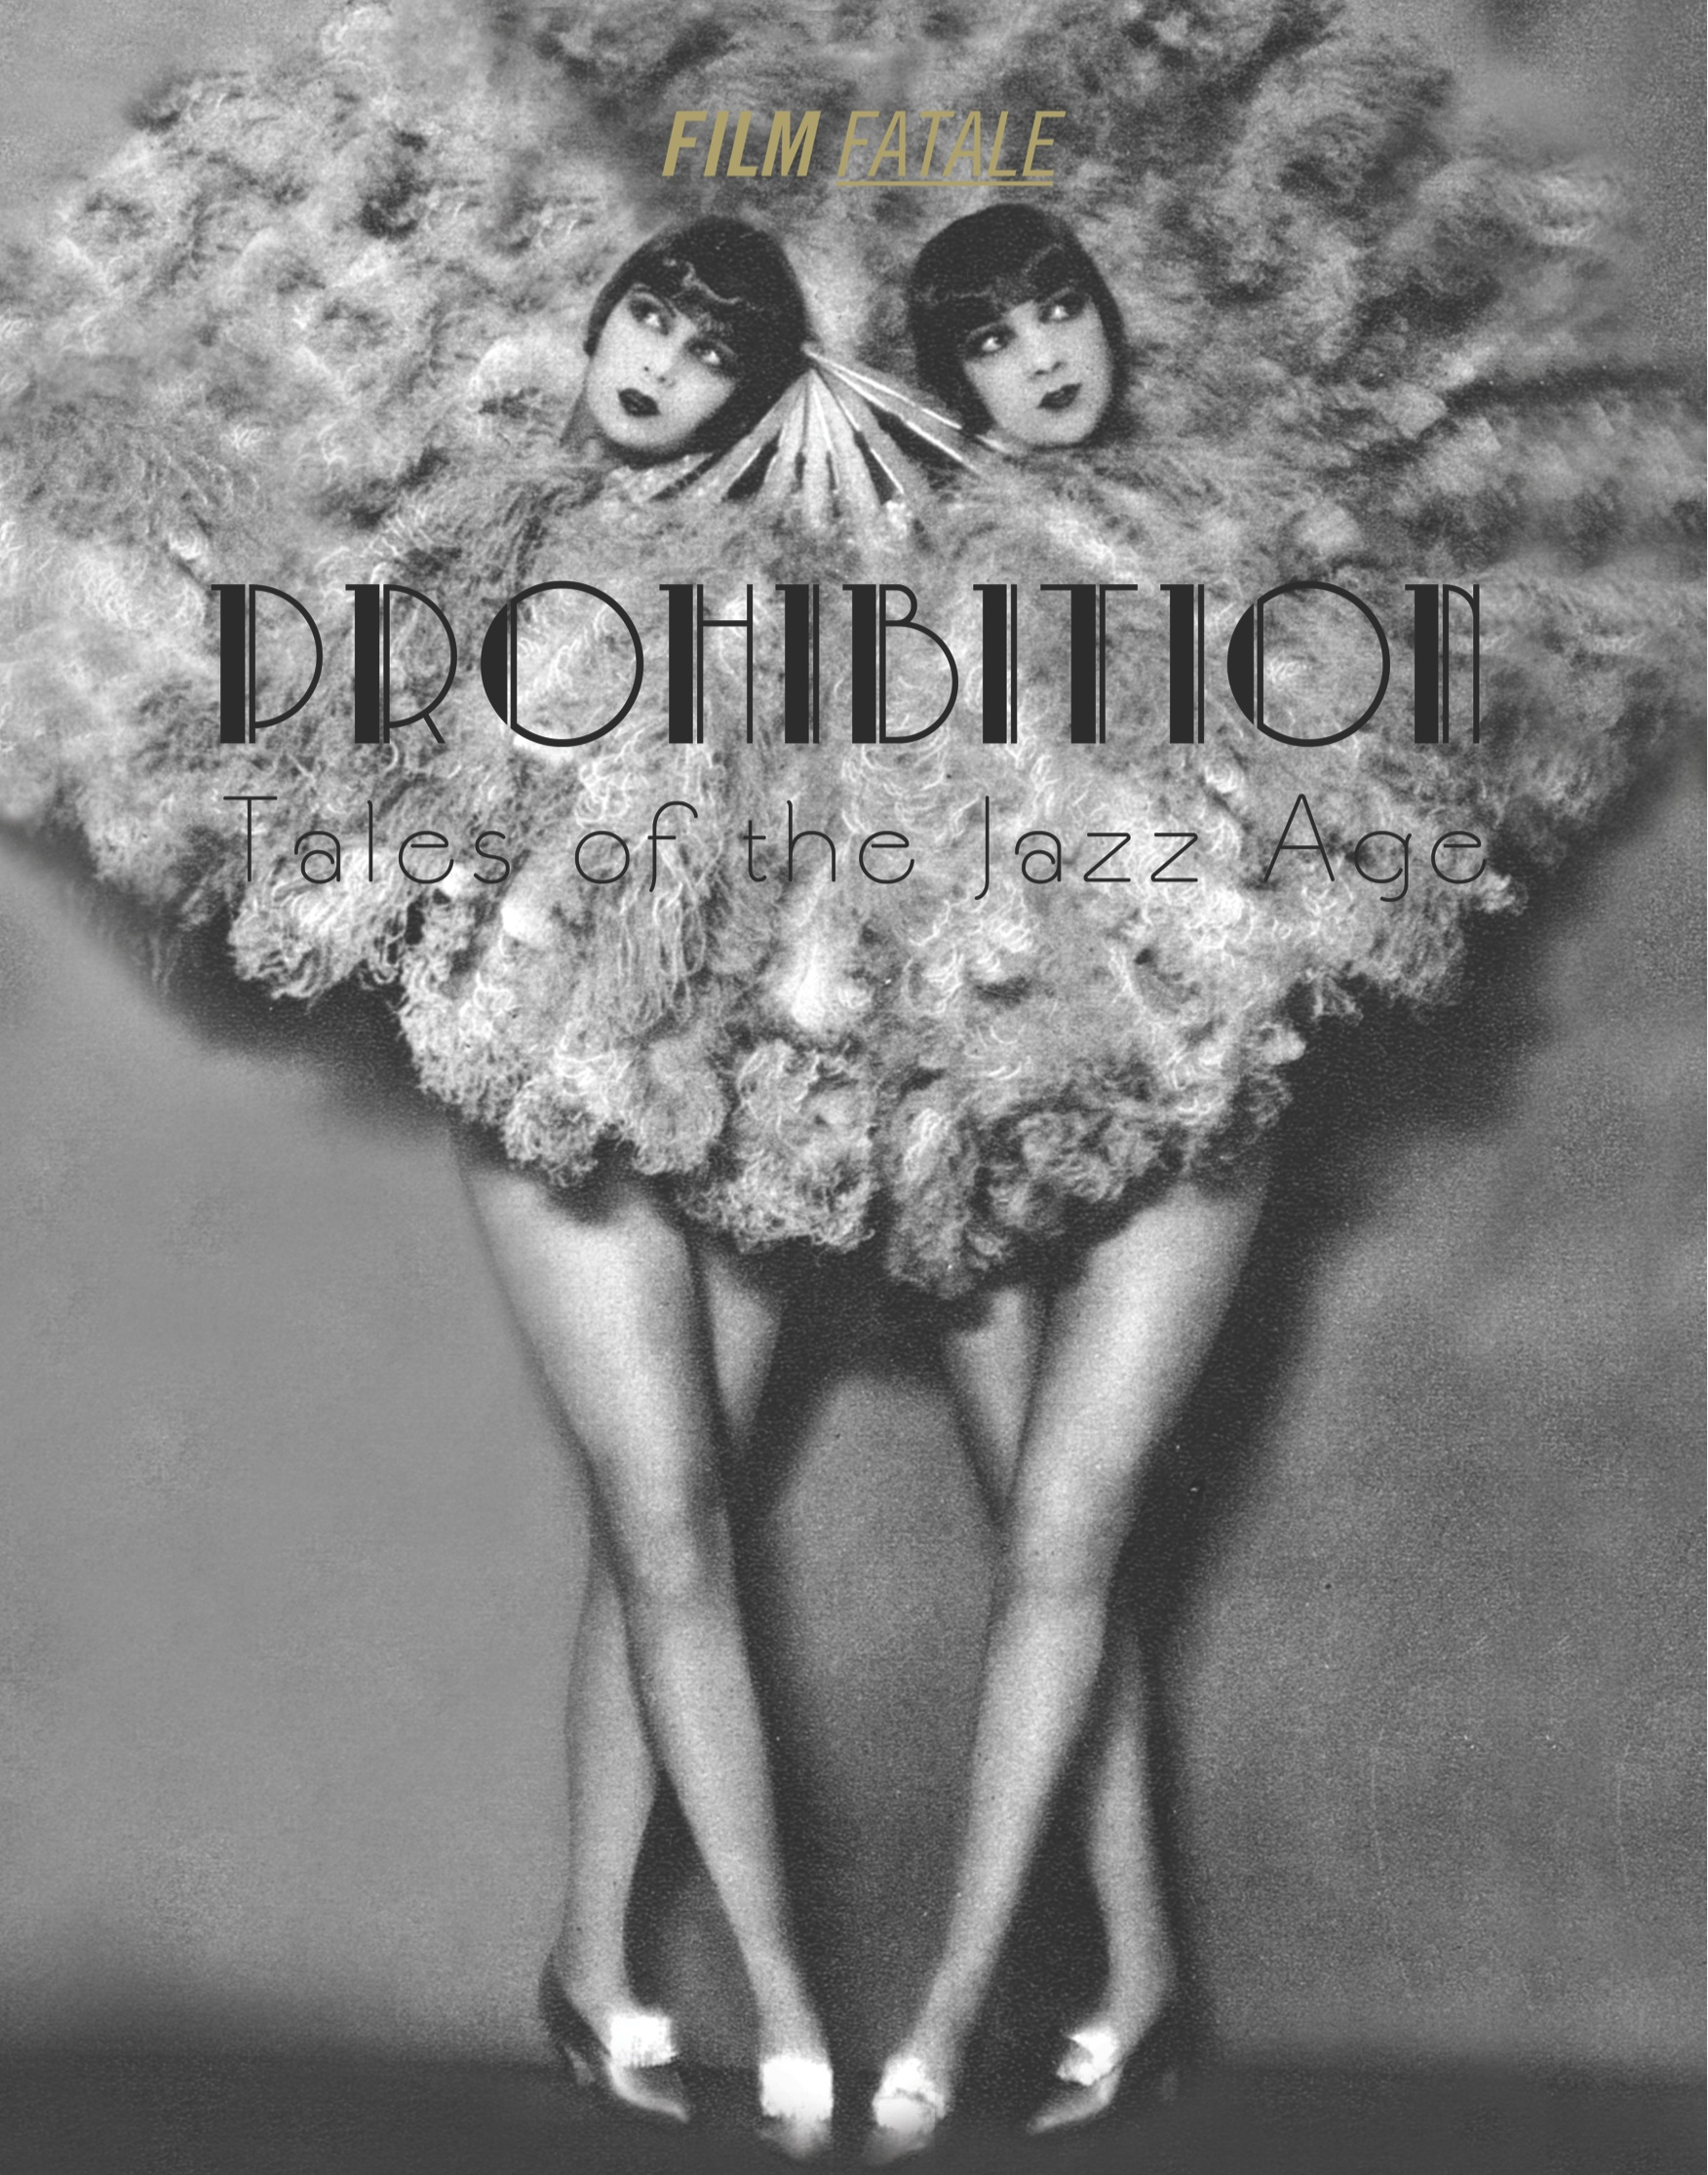 Prohibition Tales Of The Jazz Age